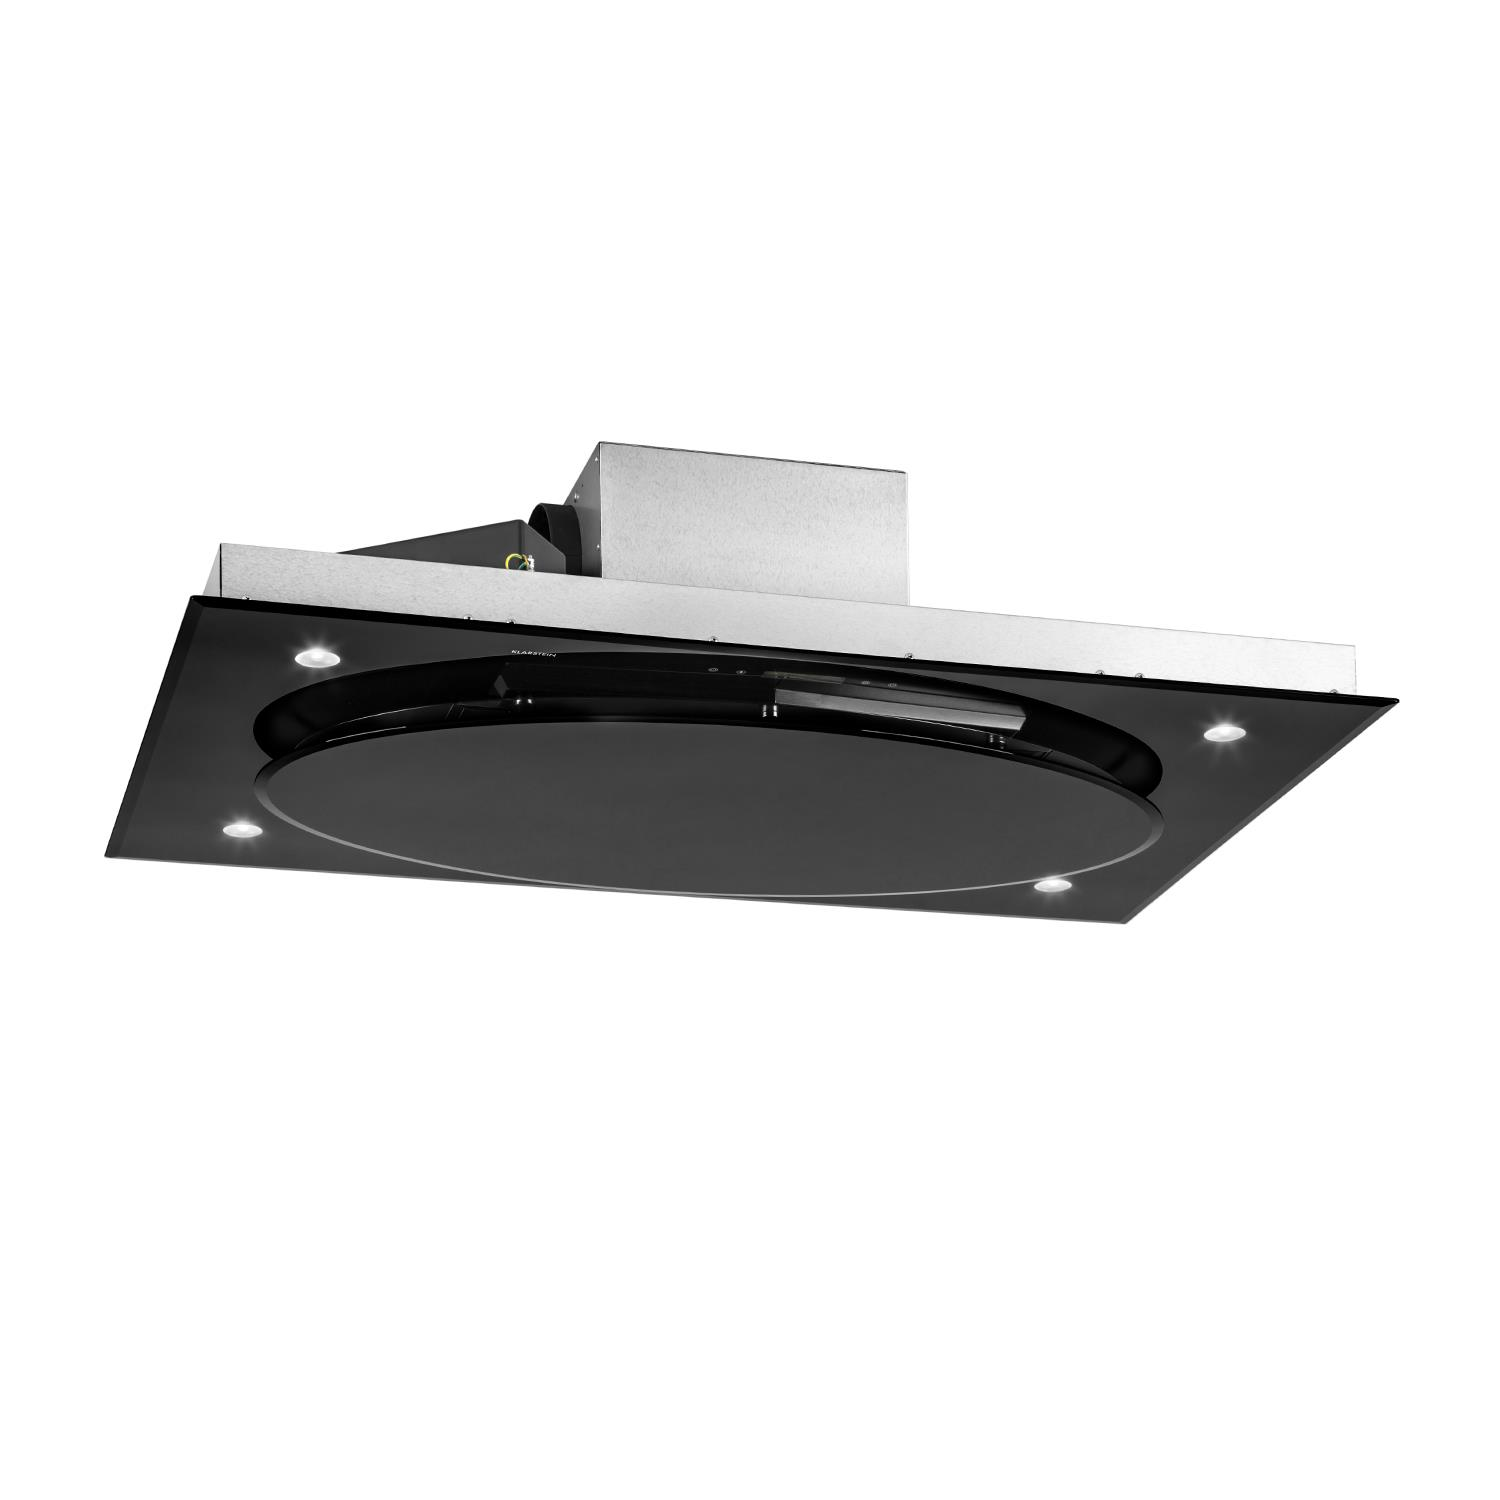 cooker hoods extractor fan kitchen chimney ceiling mount led 800m h rh ebay co uk Kitchen Island Ceiling Ventilation Kitchen Island Ceiling Ventilation